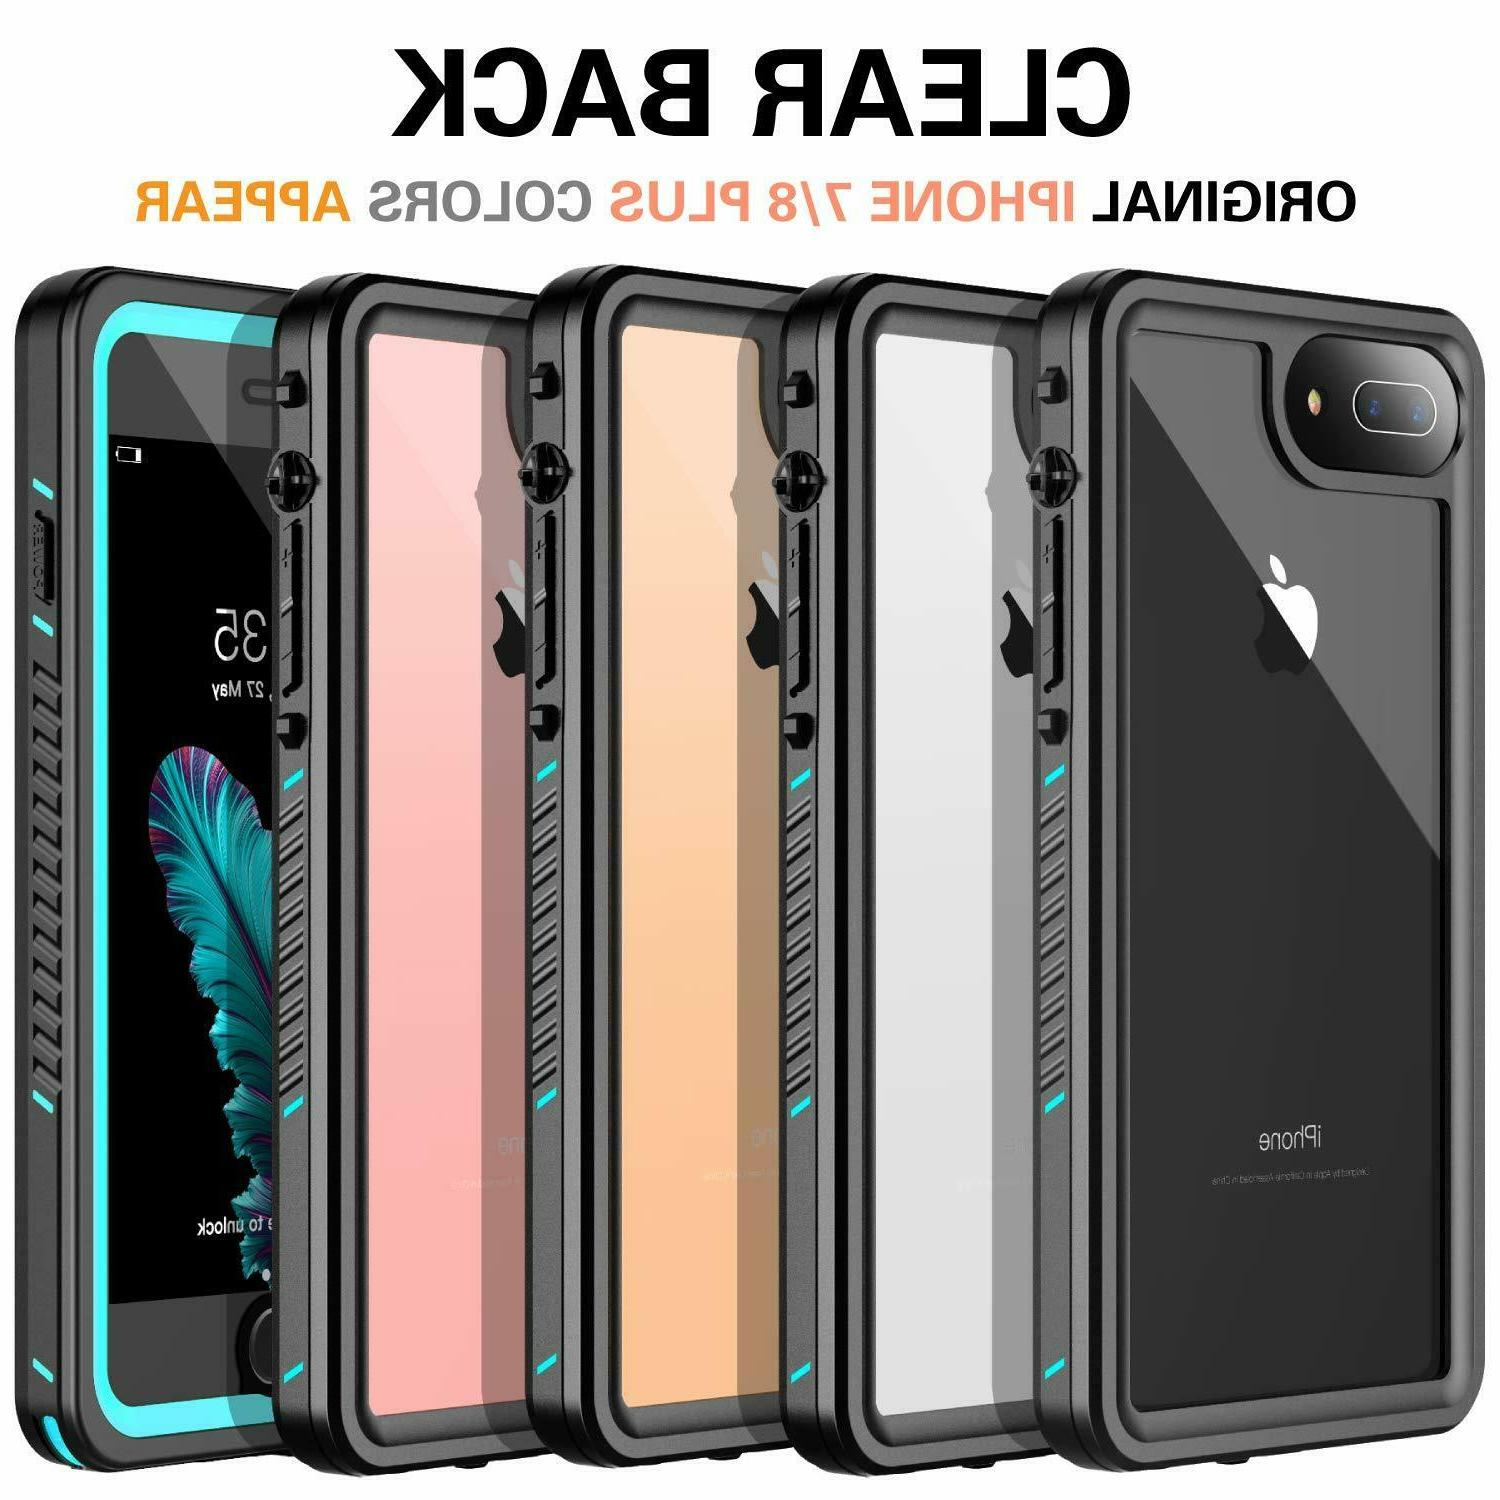 Heavy Duty Protection iPhone Plus Shockproof